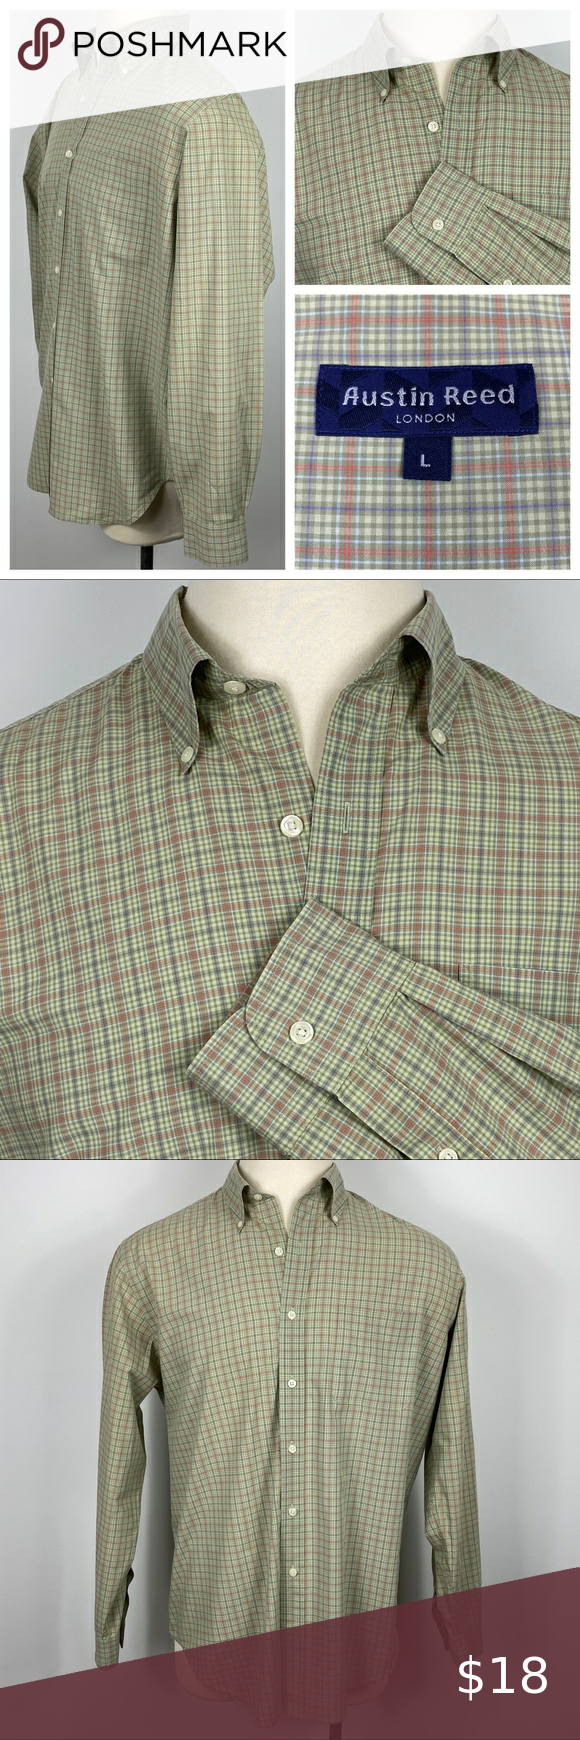 Euc Austin Reed London Dress Shirt Large London Dress Shirts Mens Shirt Dress Clothes Design